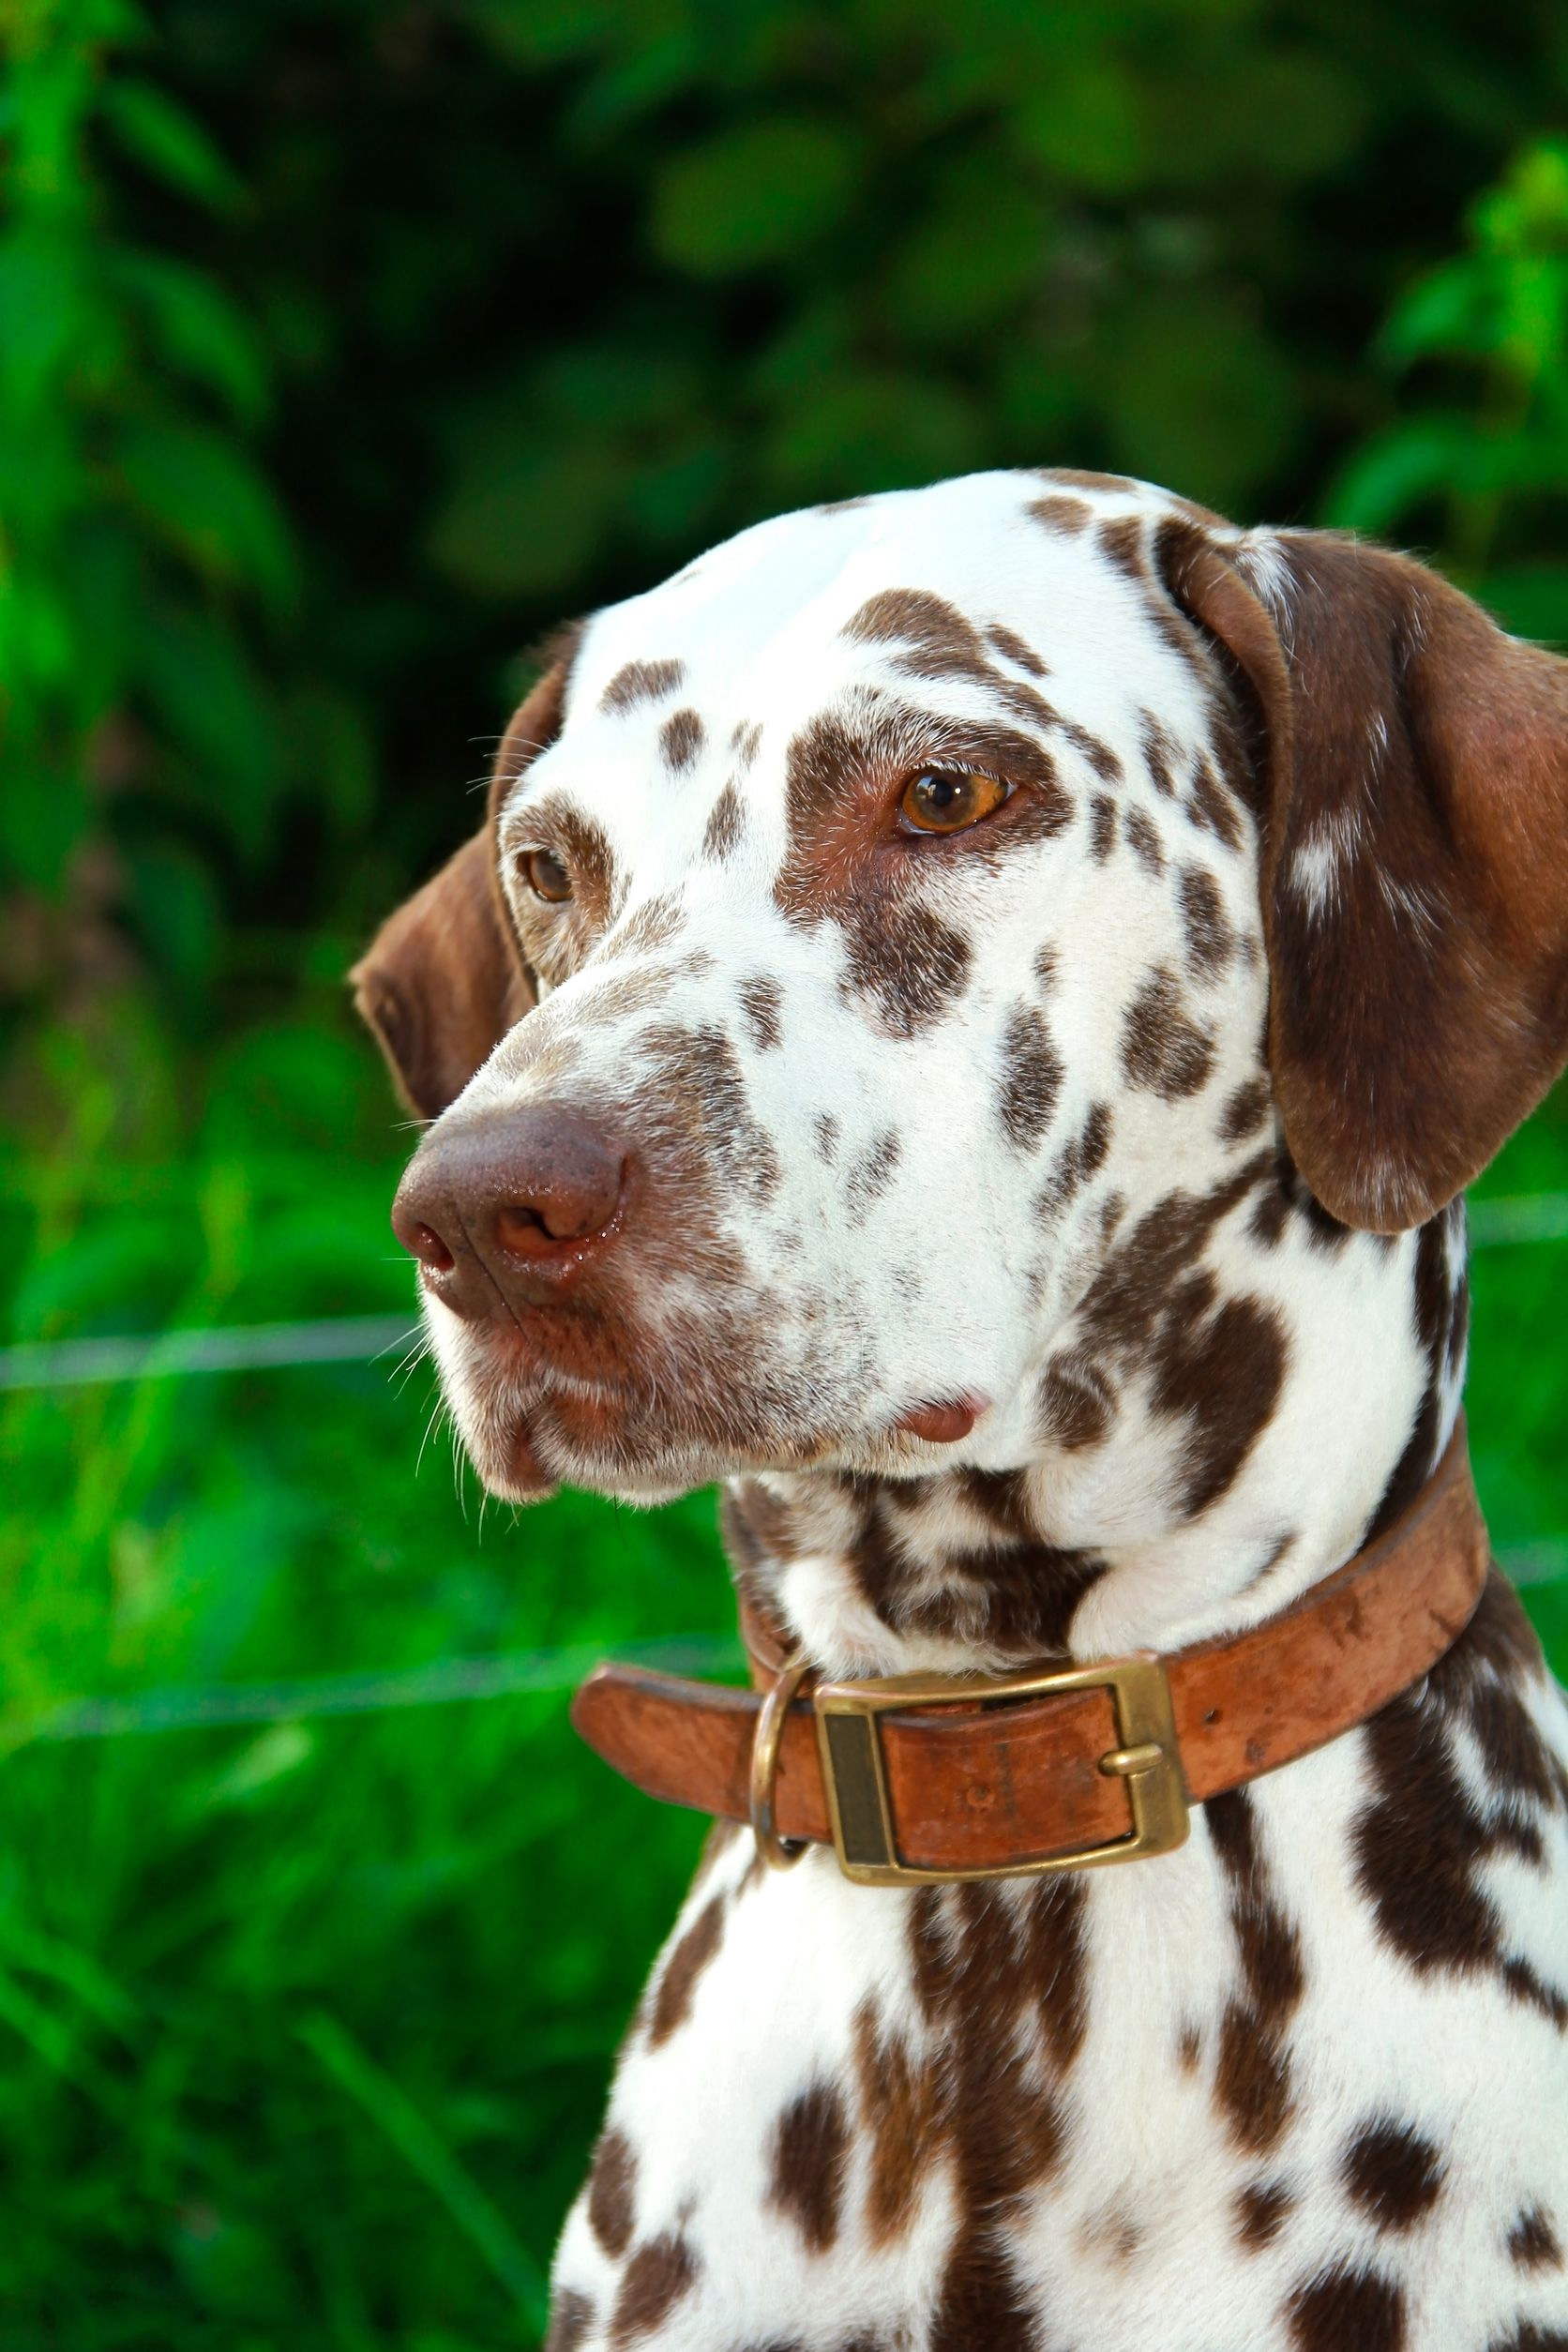 dalmation with collar